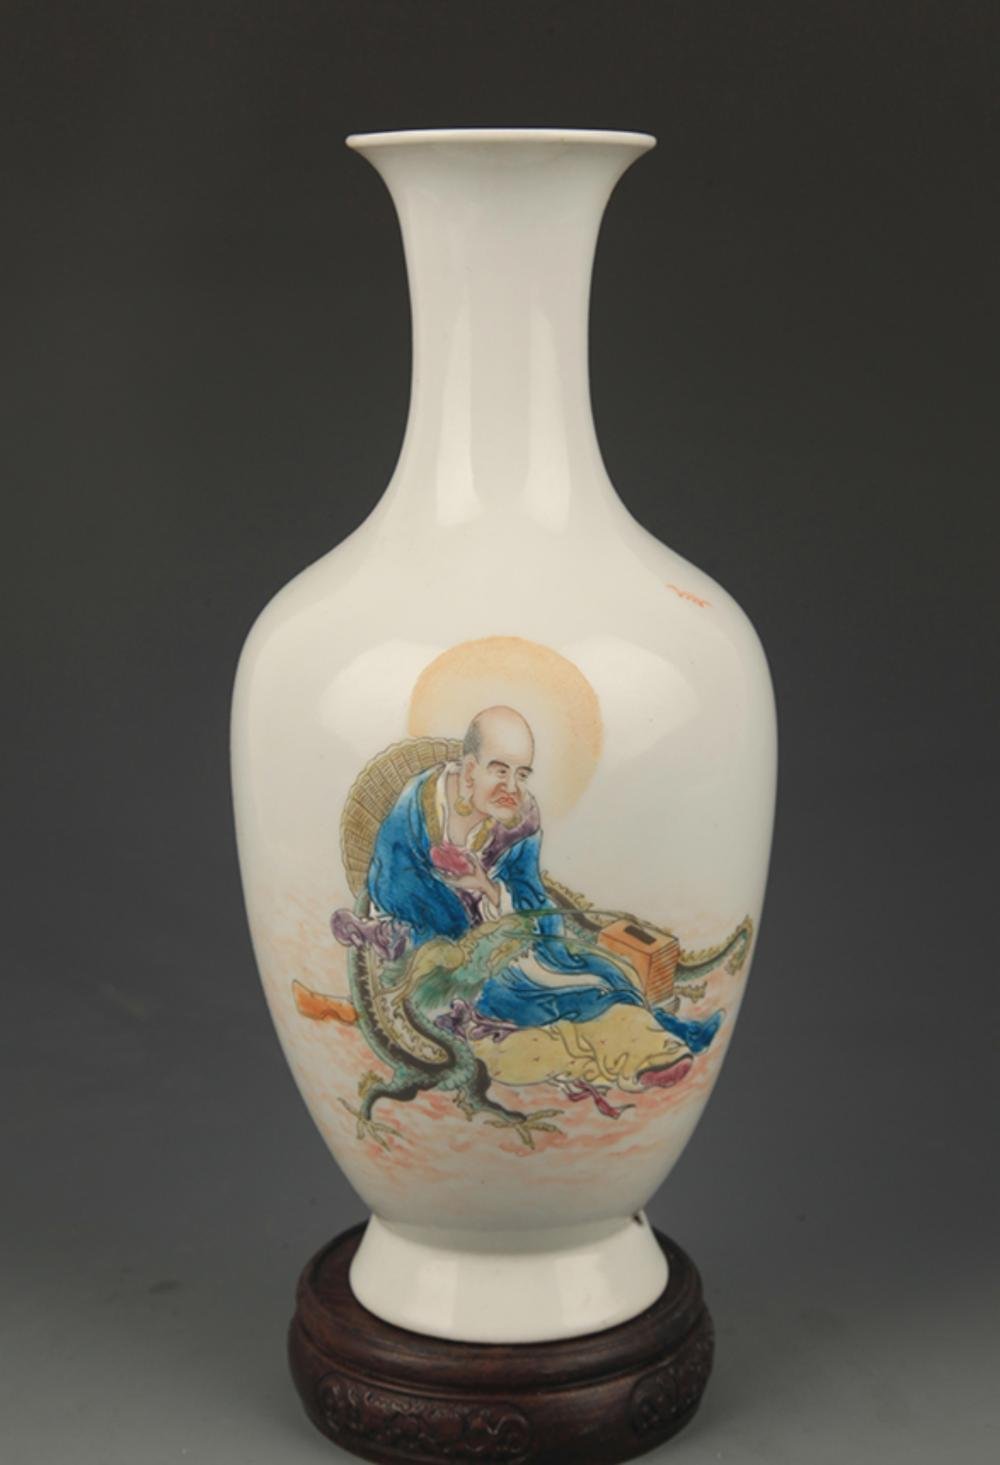 WANG QI MARK FAMILLE ROSE CHARACTER PATTERN PORCELAIN VASE